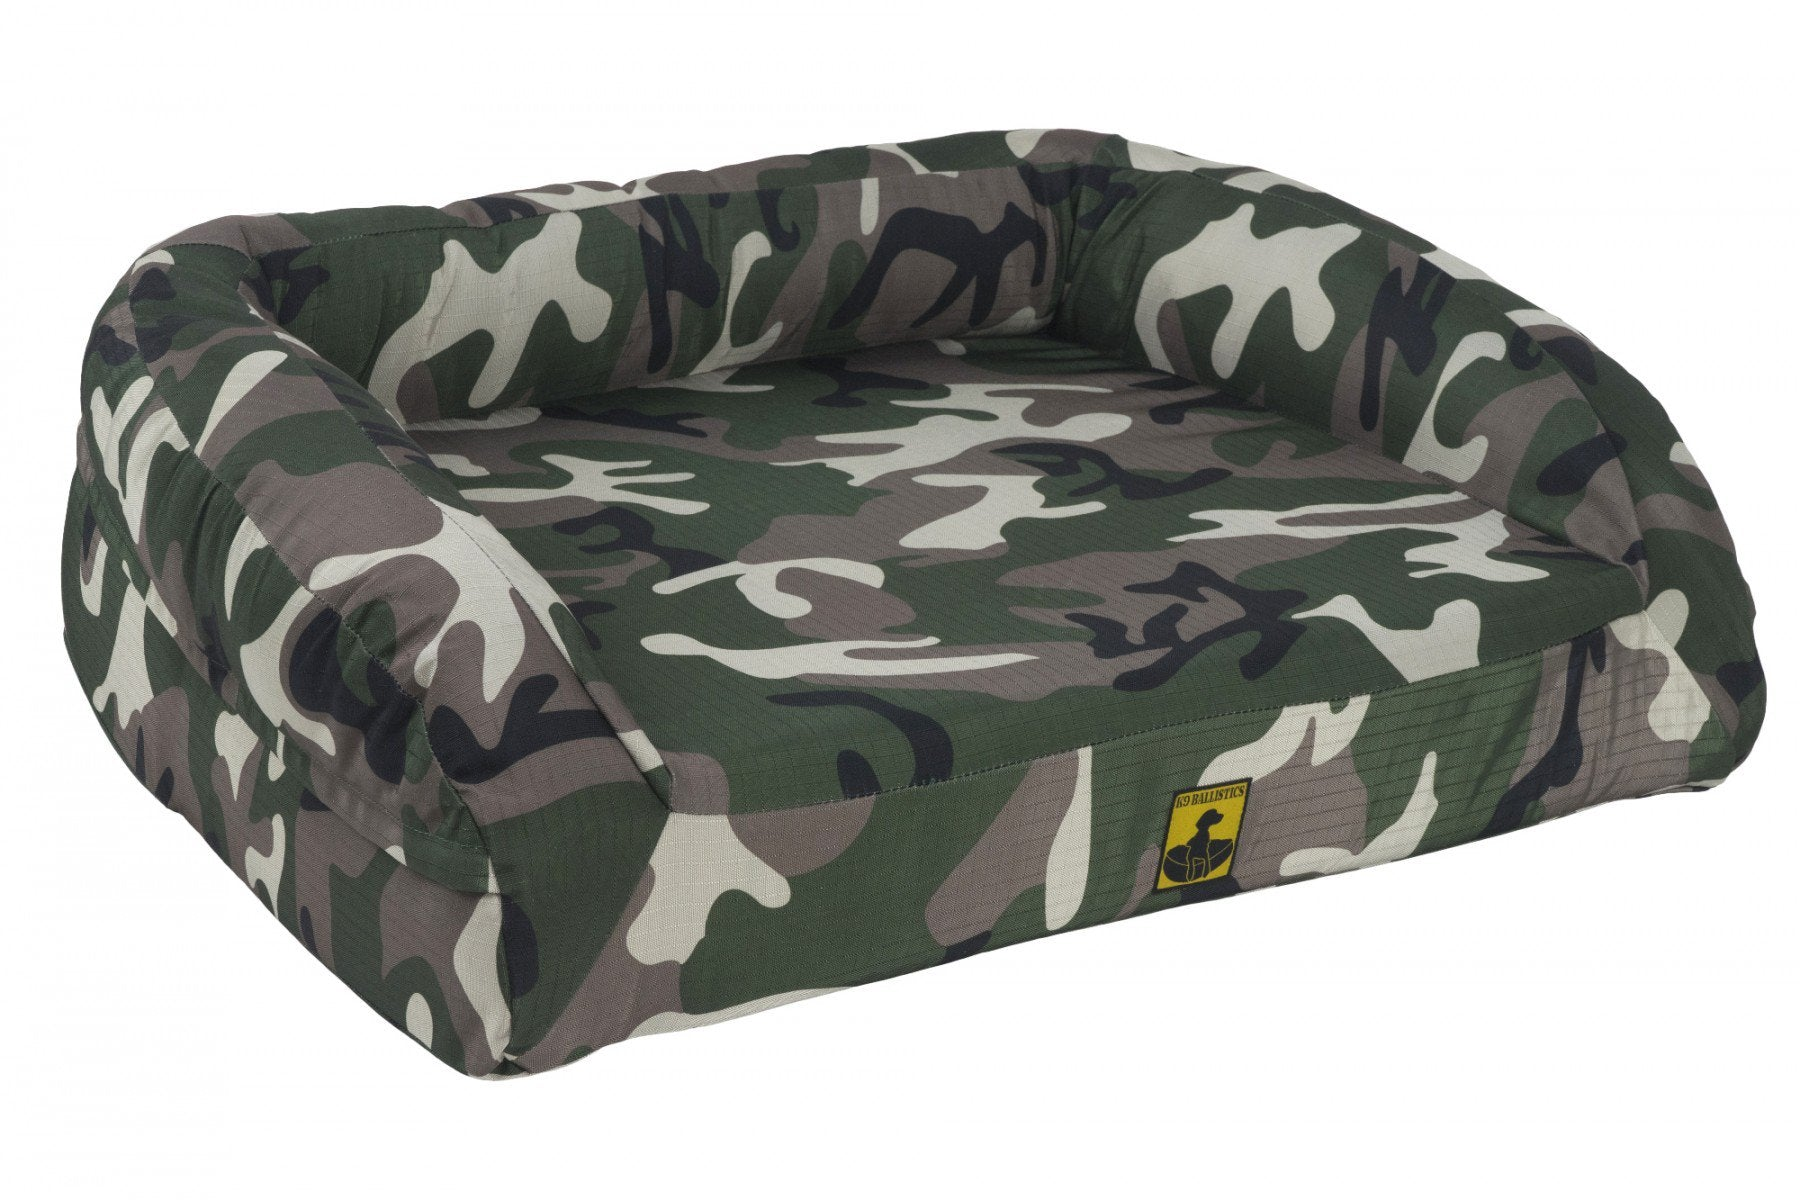 chew resistant durable tough orthopedic dog bed camo